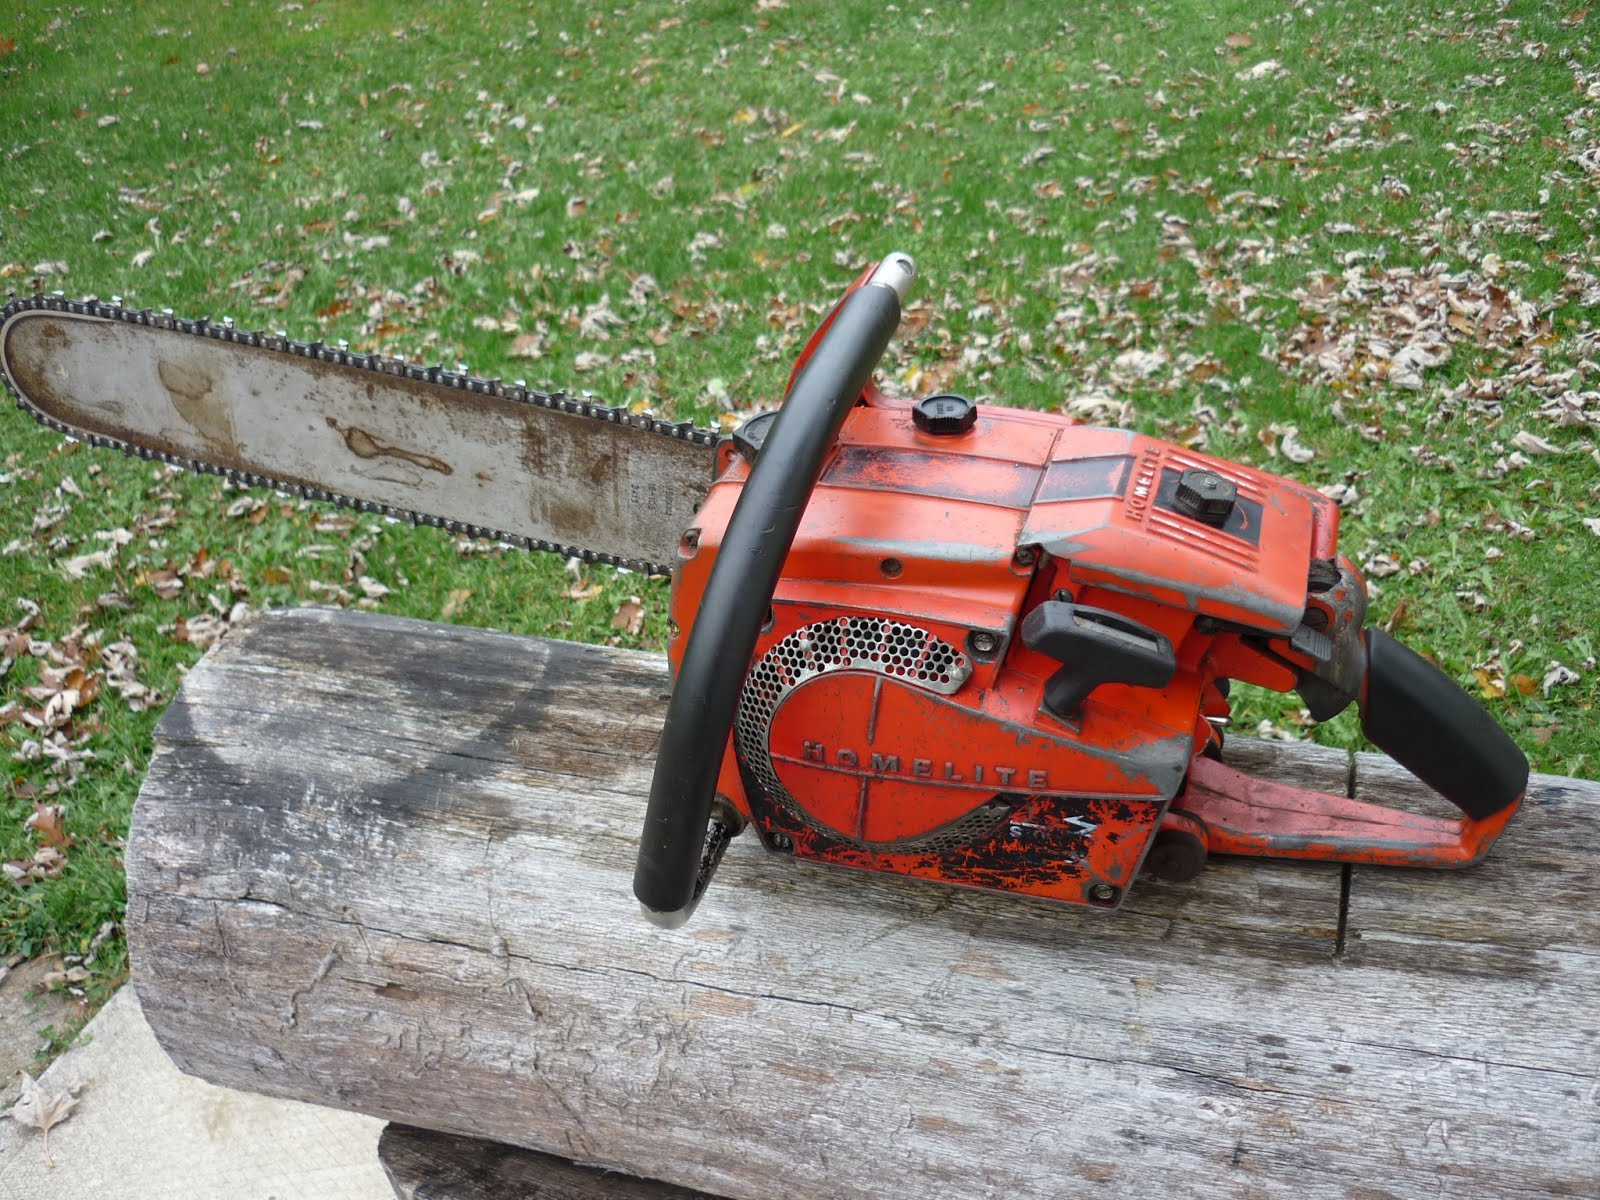 360 homelite Chainsaw service Manual